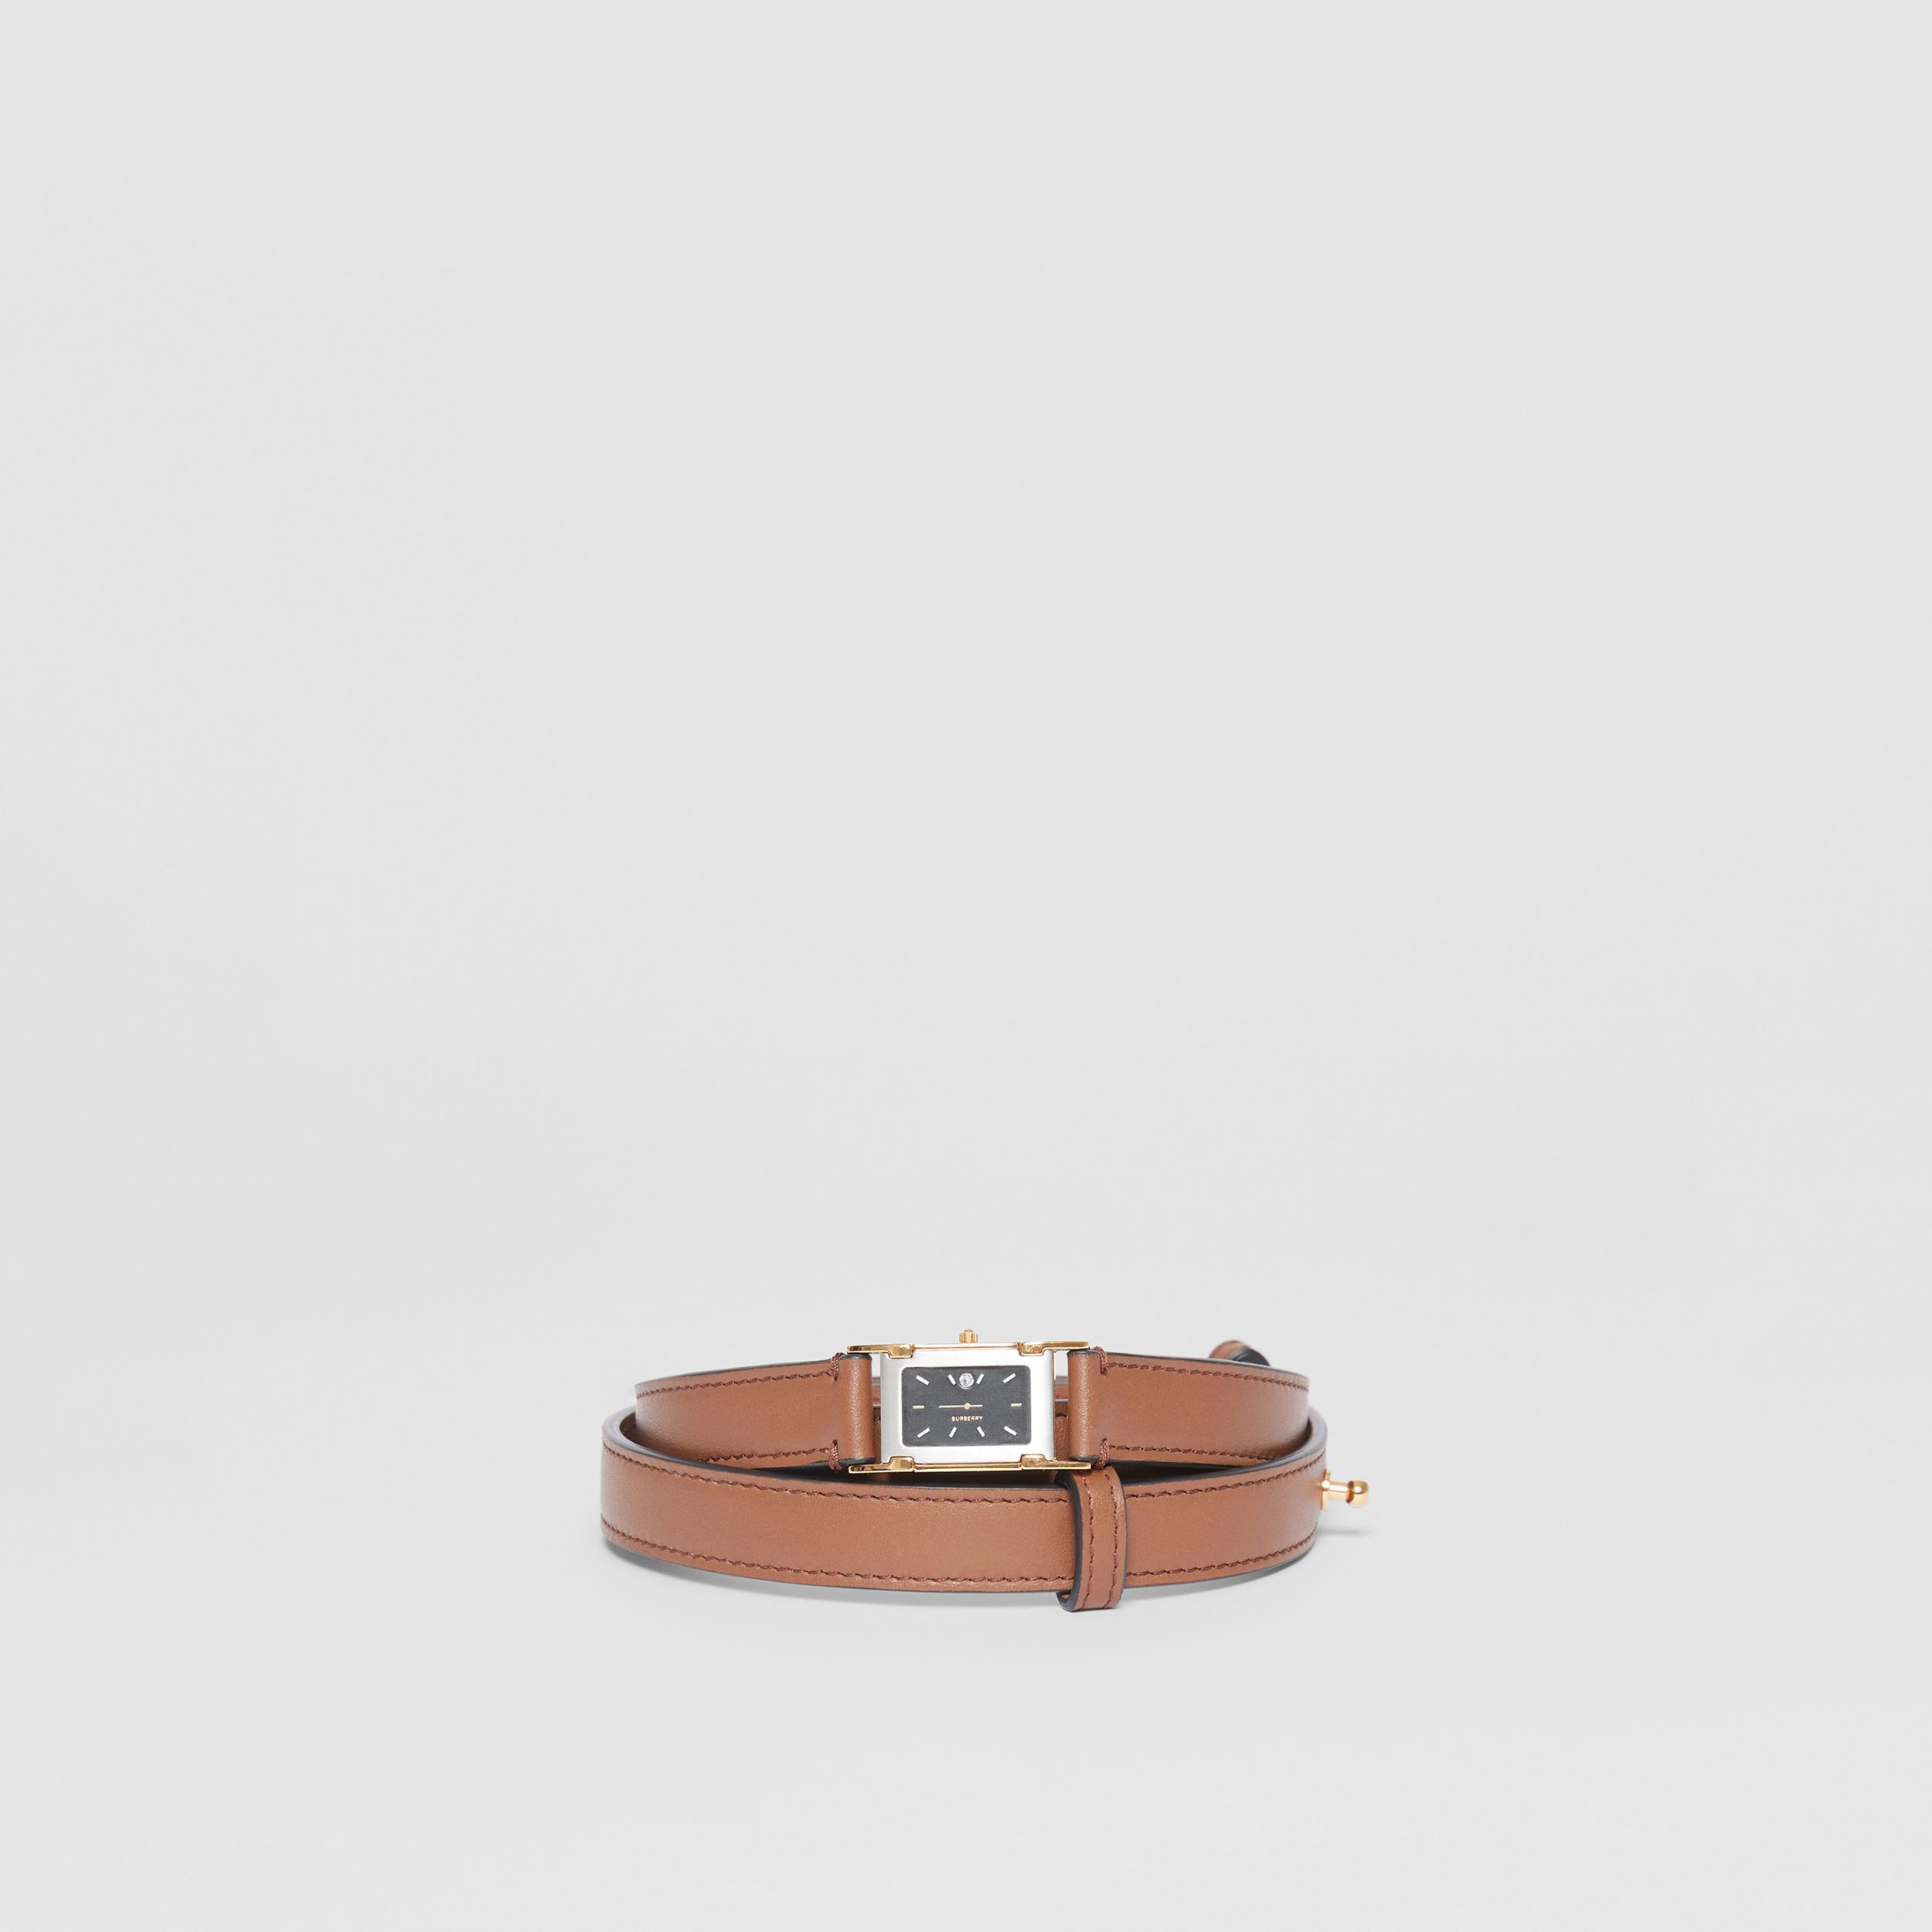 Faux Watch Detail Leather Belt in Tan - Men | Burberry Hong Kong S.A.R - 3